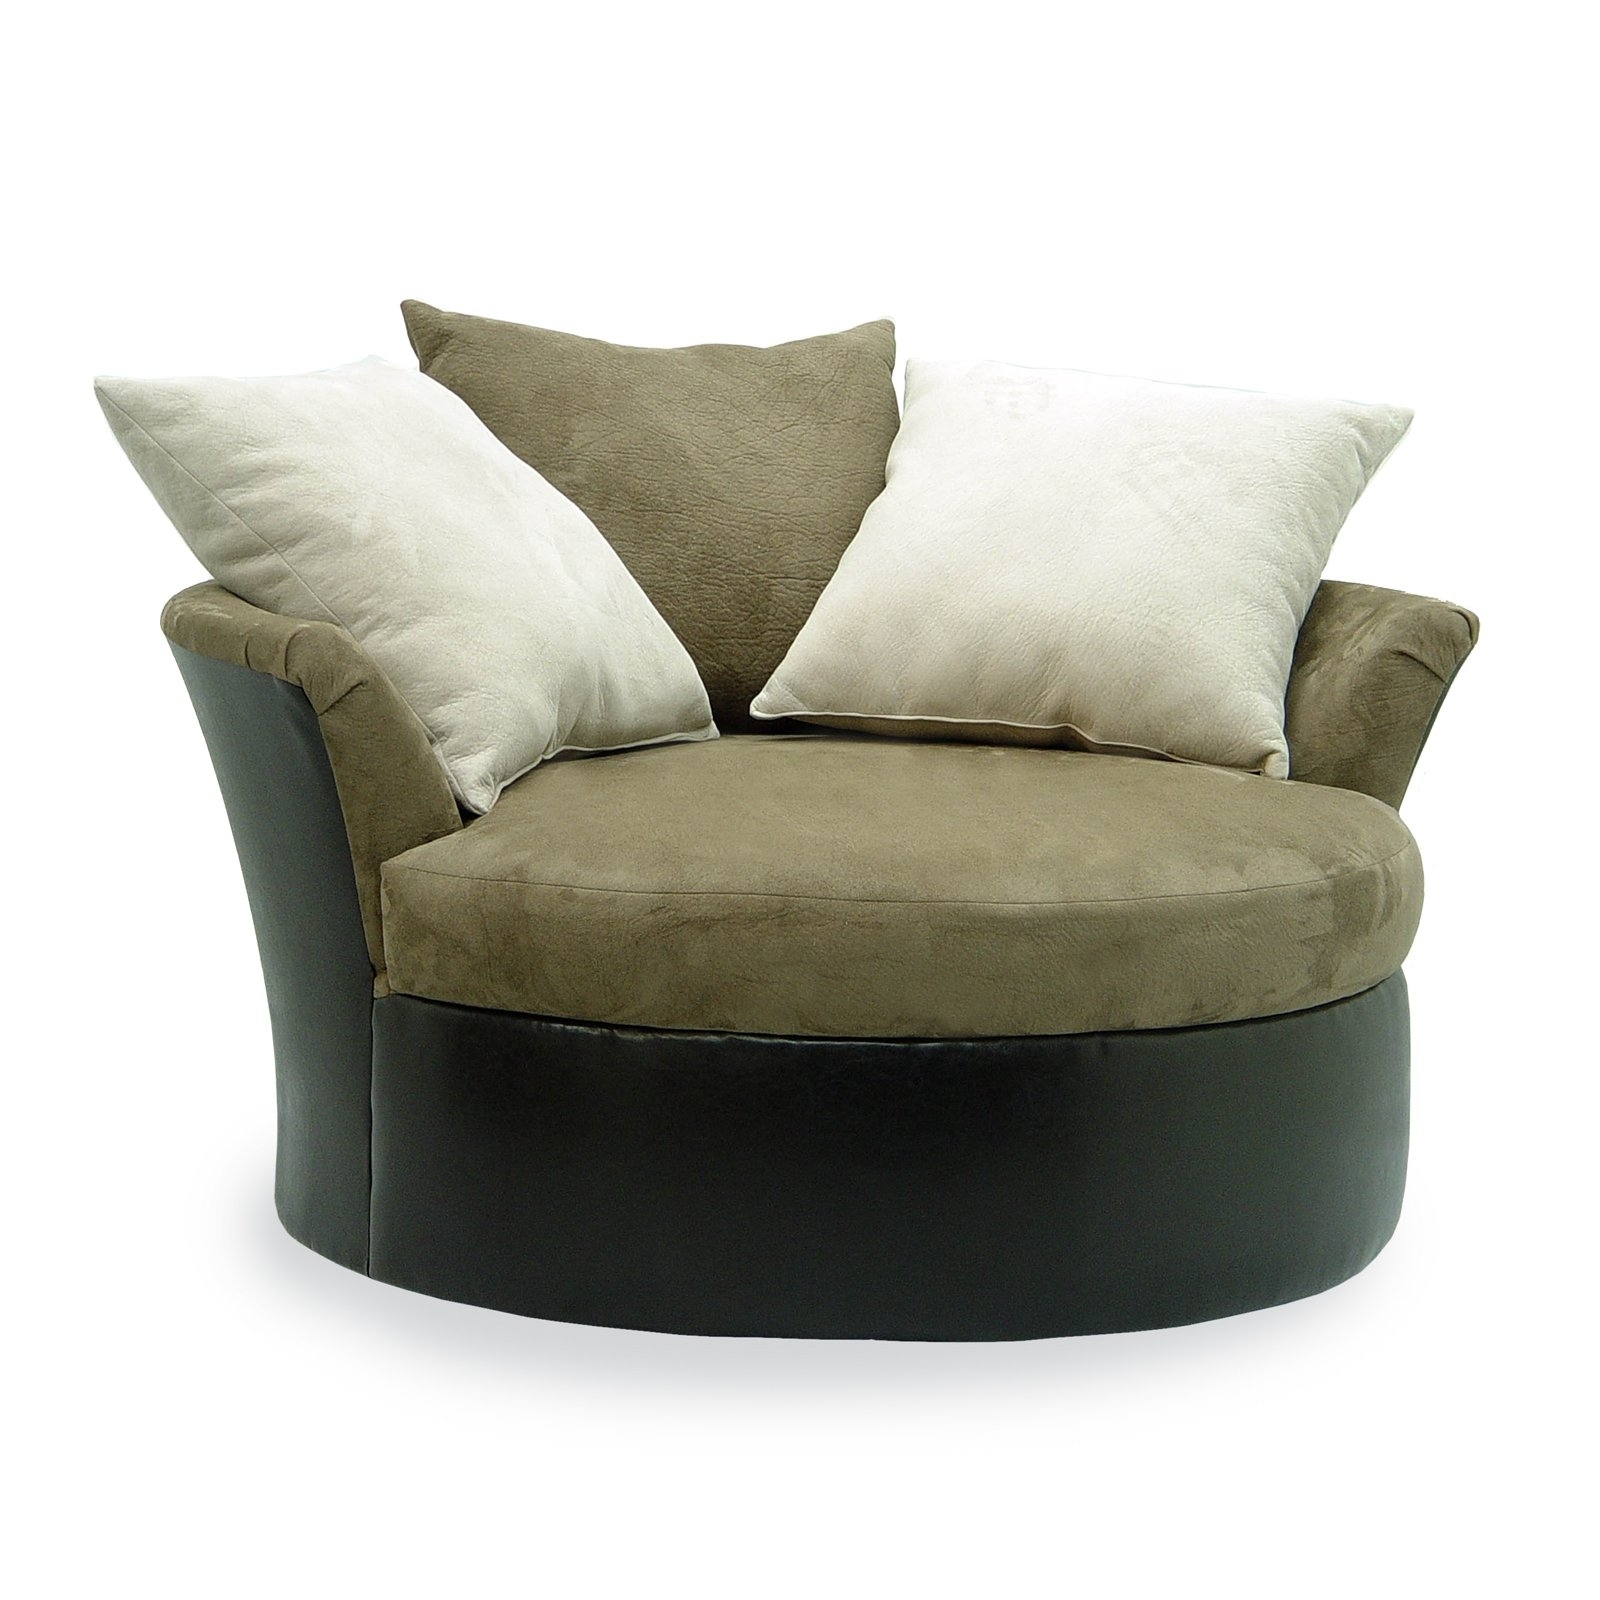 Newest Buy Accent Chaise Lounge Chairs For Your Home – Furniture And Regarding Cheap Chaise Lounge Chairs (View 12 of 15)